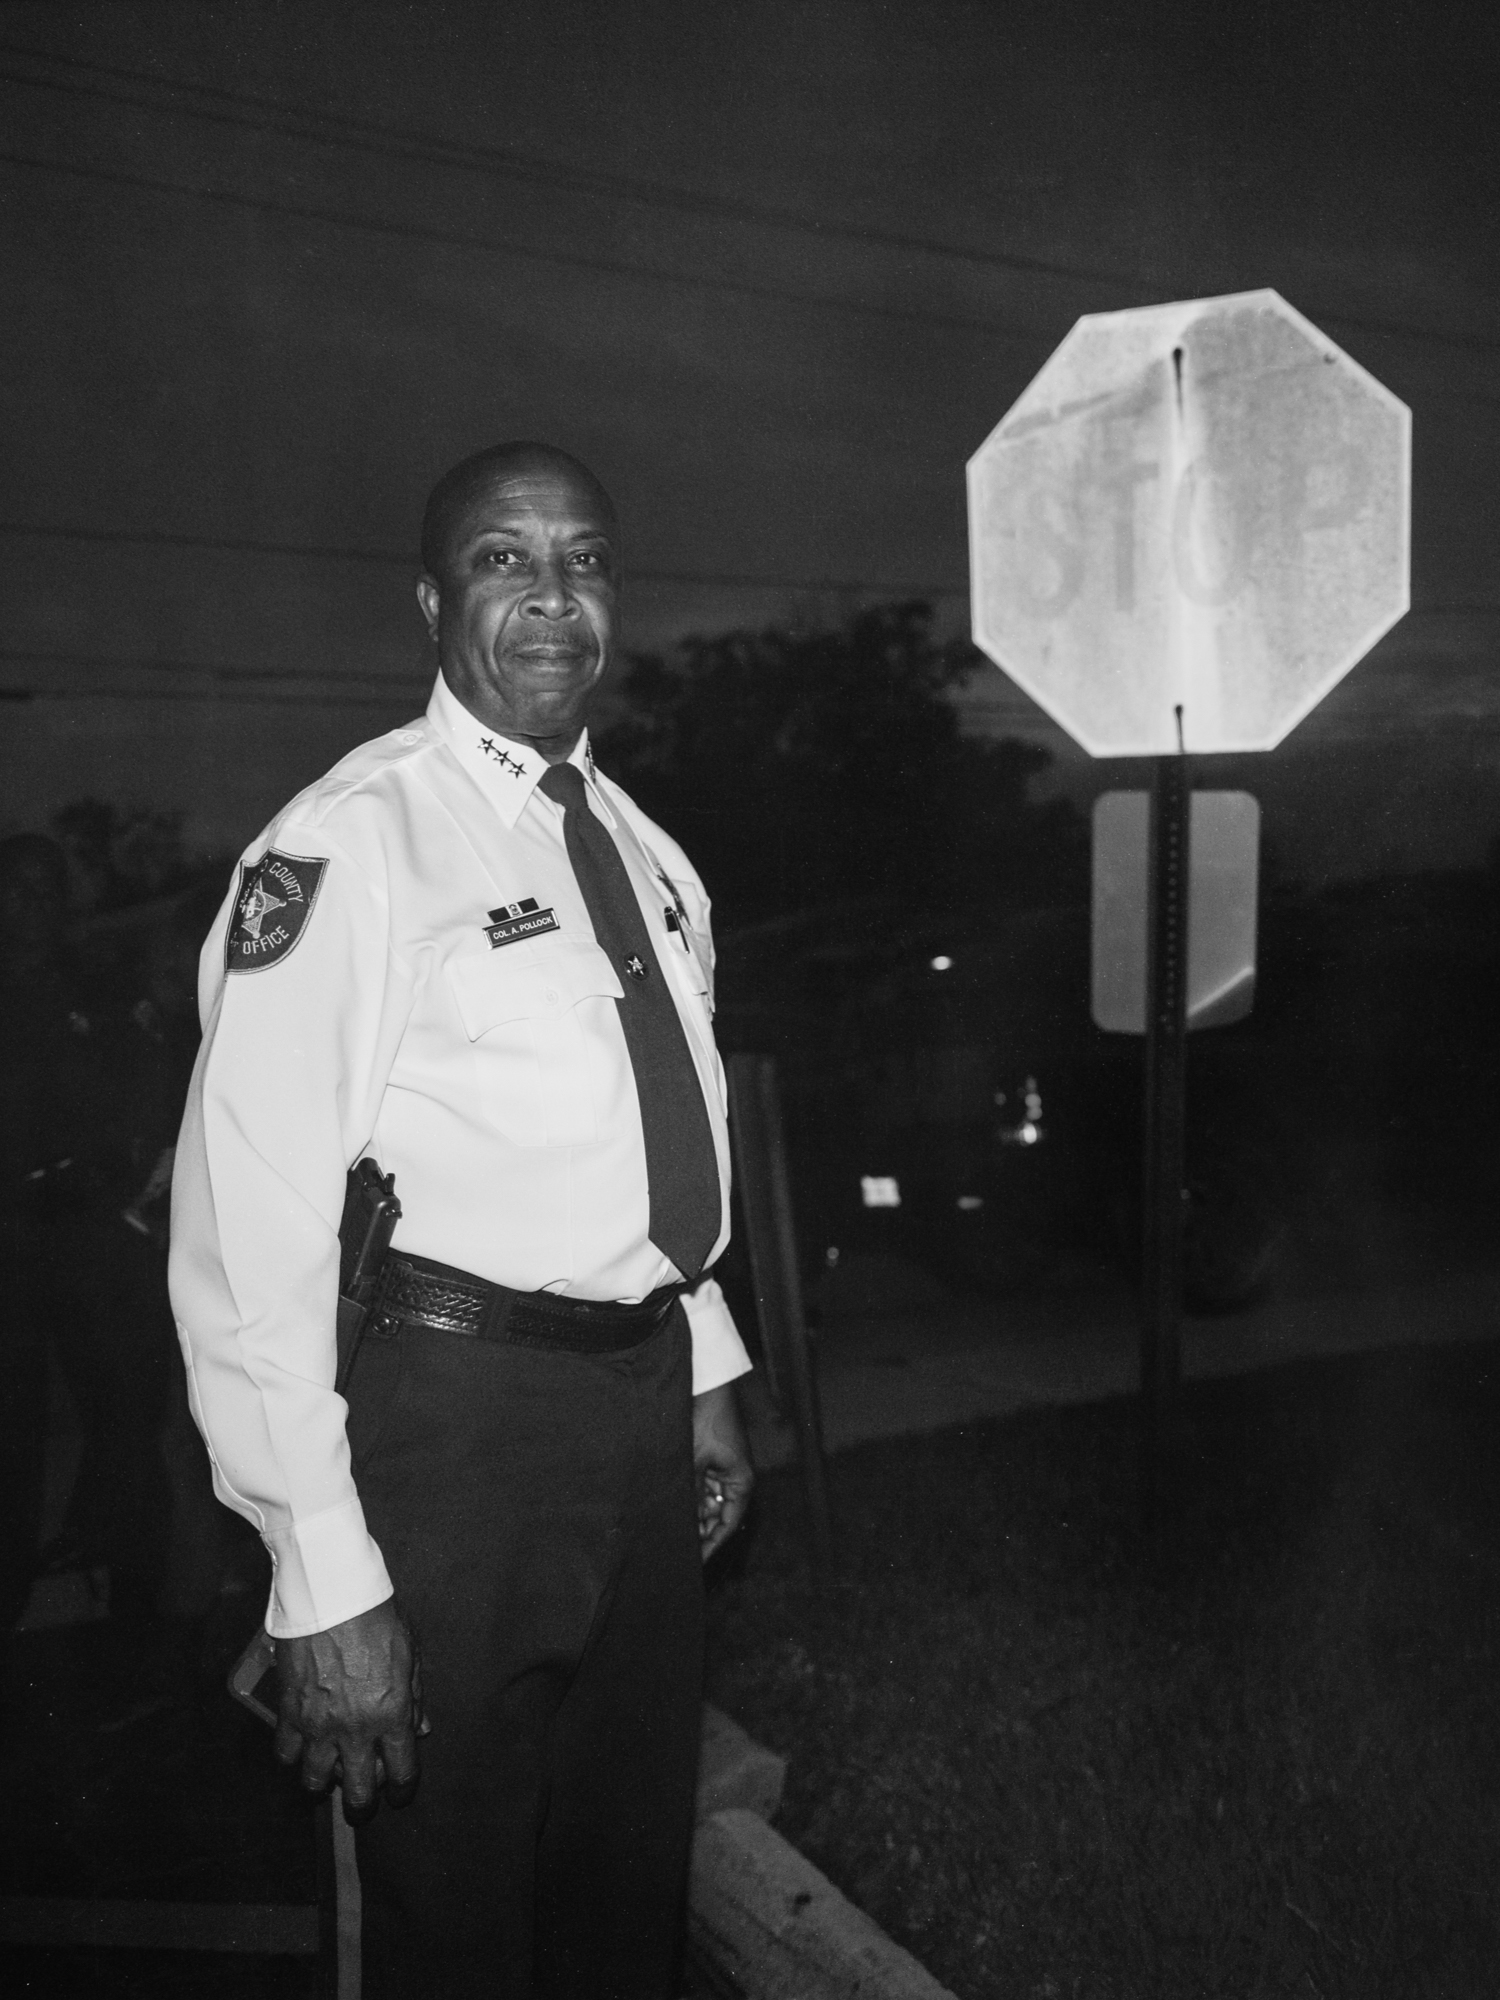 Colonel Al   Pollock while attending a Community Peace Rally, in response to the acquittal of George Zimmerman in the fatal shooting of Trayvon Martin.  New Mount Olive Baptist Church, Fort Lauderdale, FL - 2013